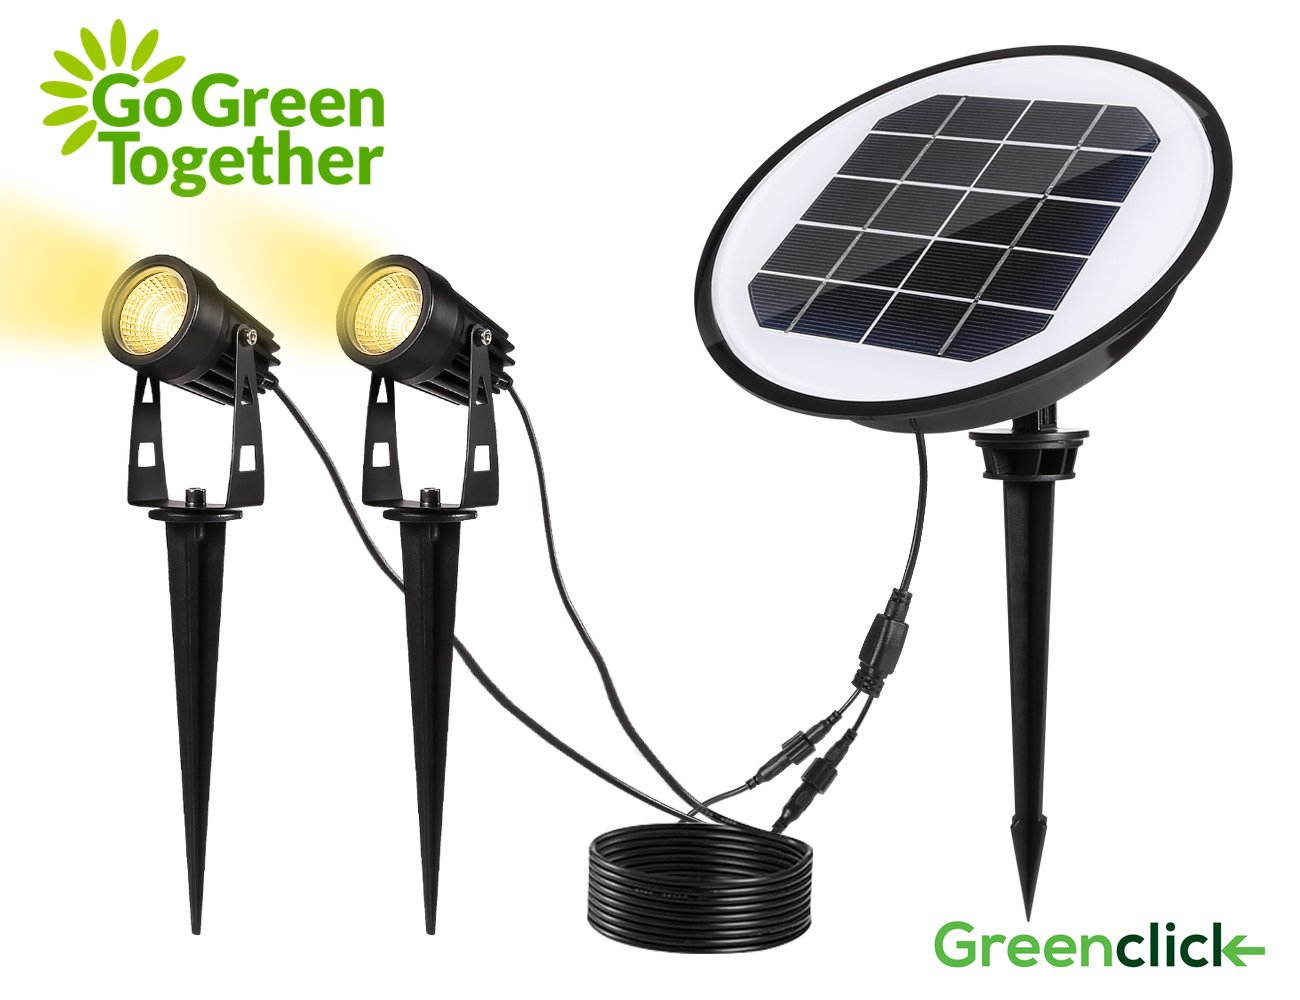 Solar Spotlights, GreenClick Waterproof IP65 Solar Powered Wall/Landscape Lights with Auto On/Off Sensor for Outdoor Patio Deck Yard Garden Driveway Pathway Pool (Warm White)